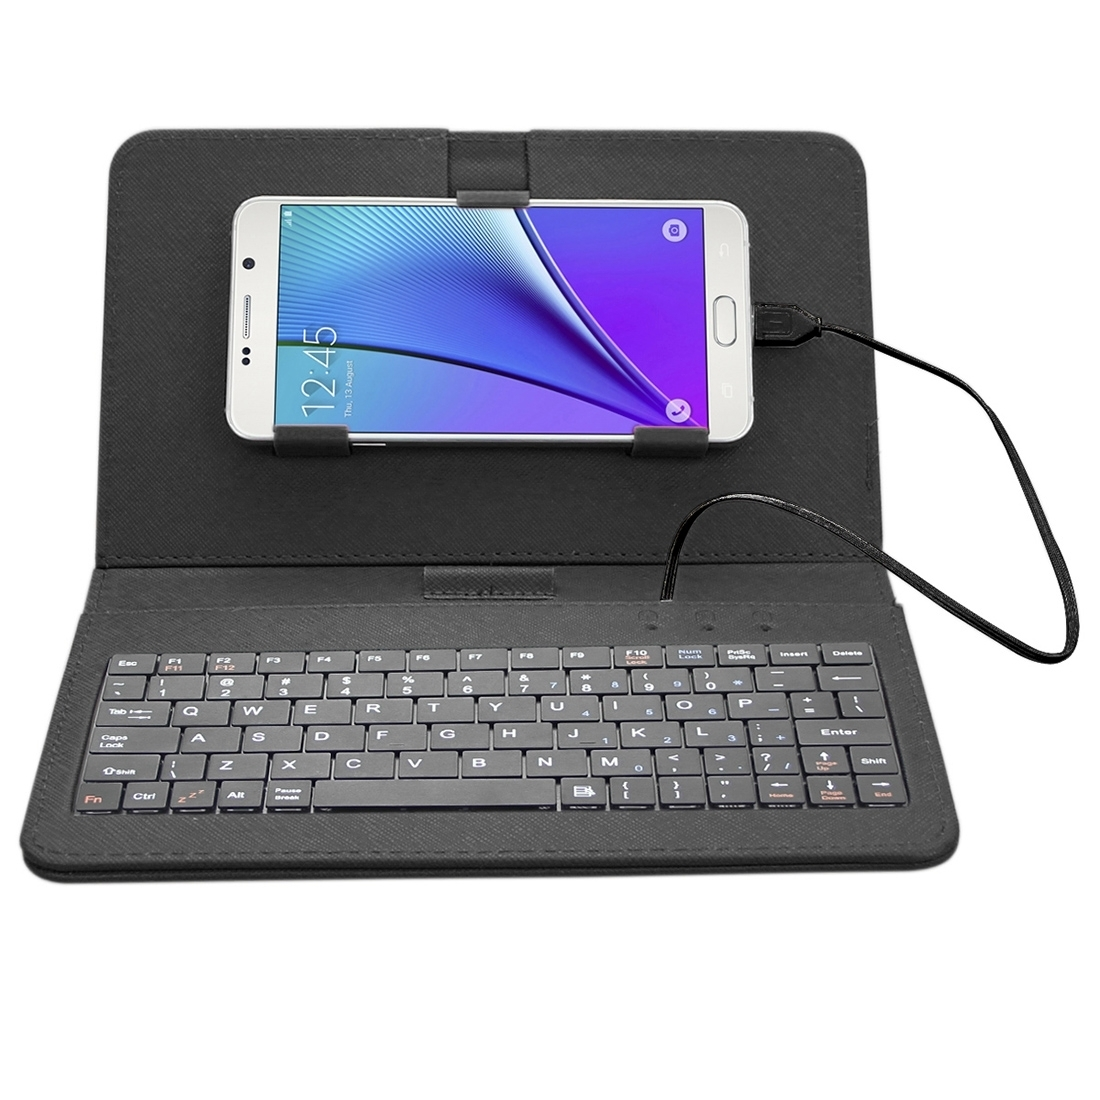 Universal Android Mobile Phone Leather Case with Keyboard (Black) - Intl product preview, discount at cheapest price